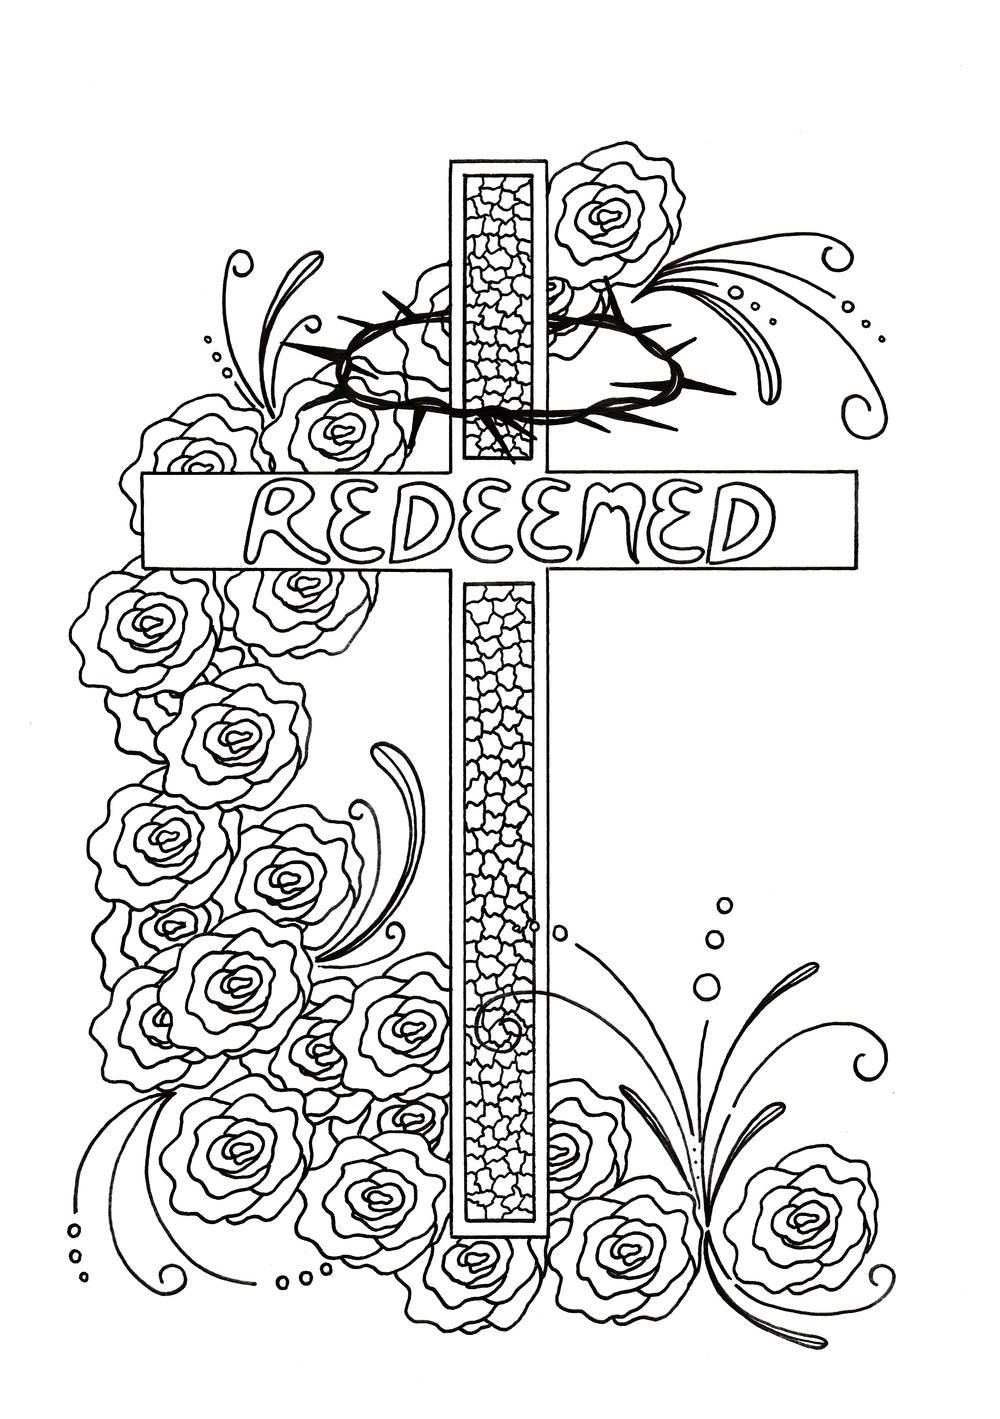 Redeemed Adult Coloring Page | Easter / Last Supper / Communion ...